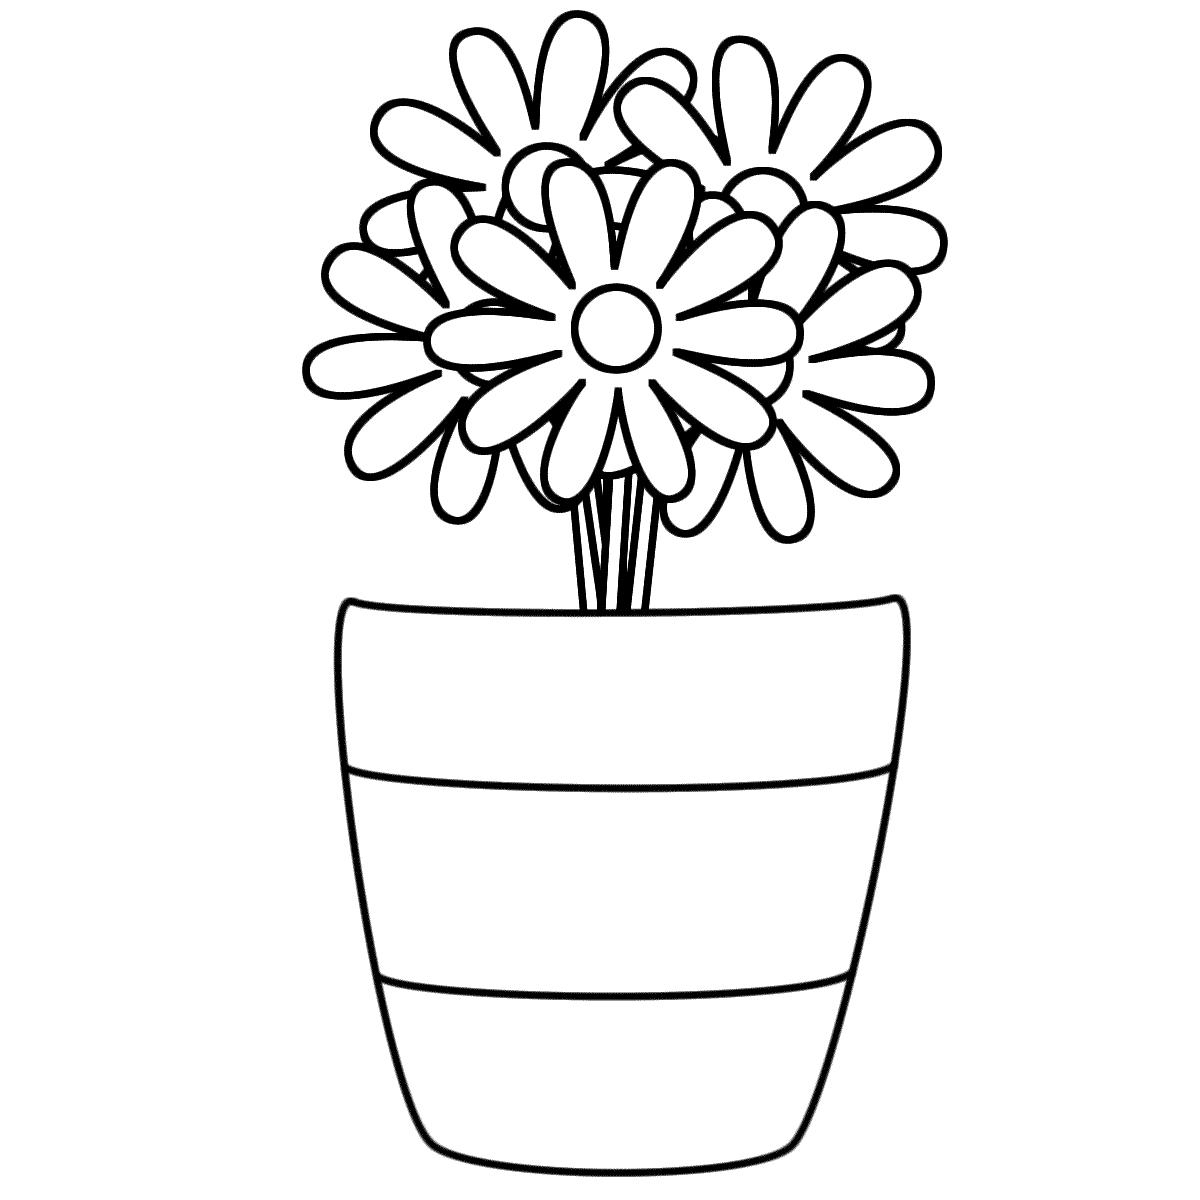 Drawn vase flower coloring page With Flowers in Page coloring